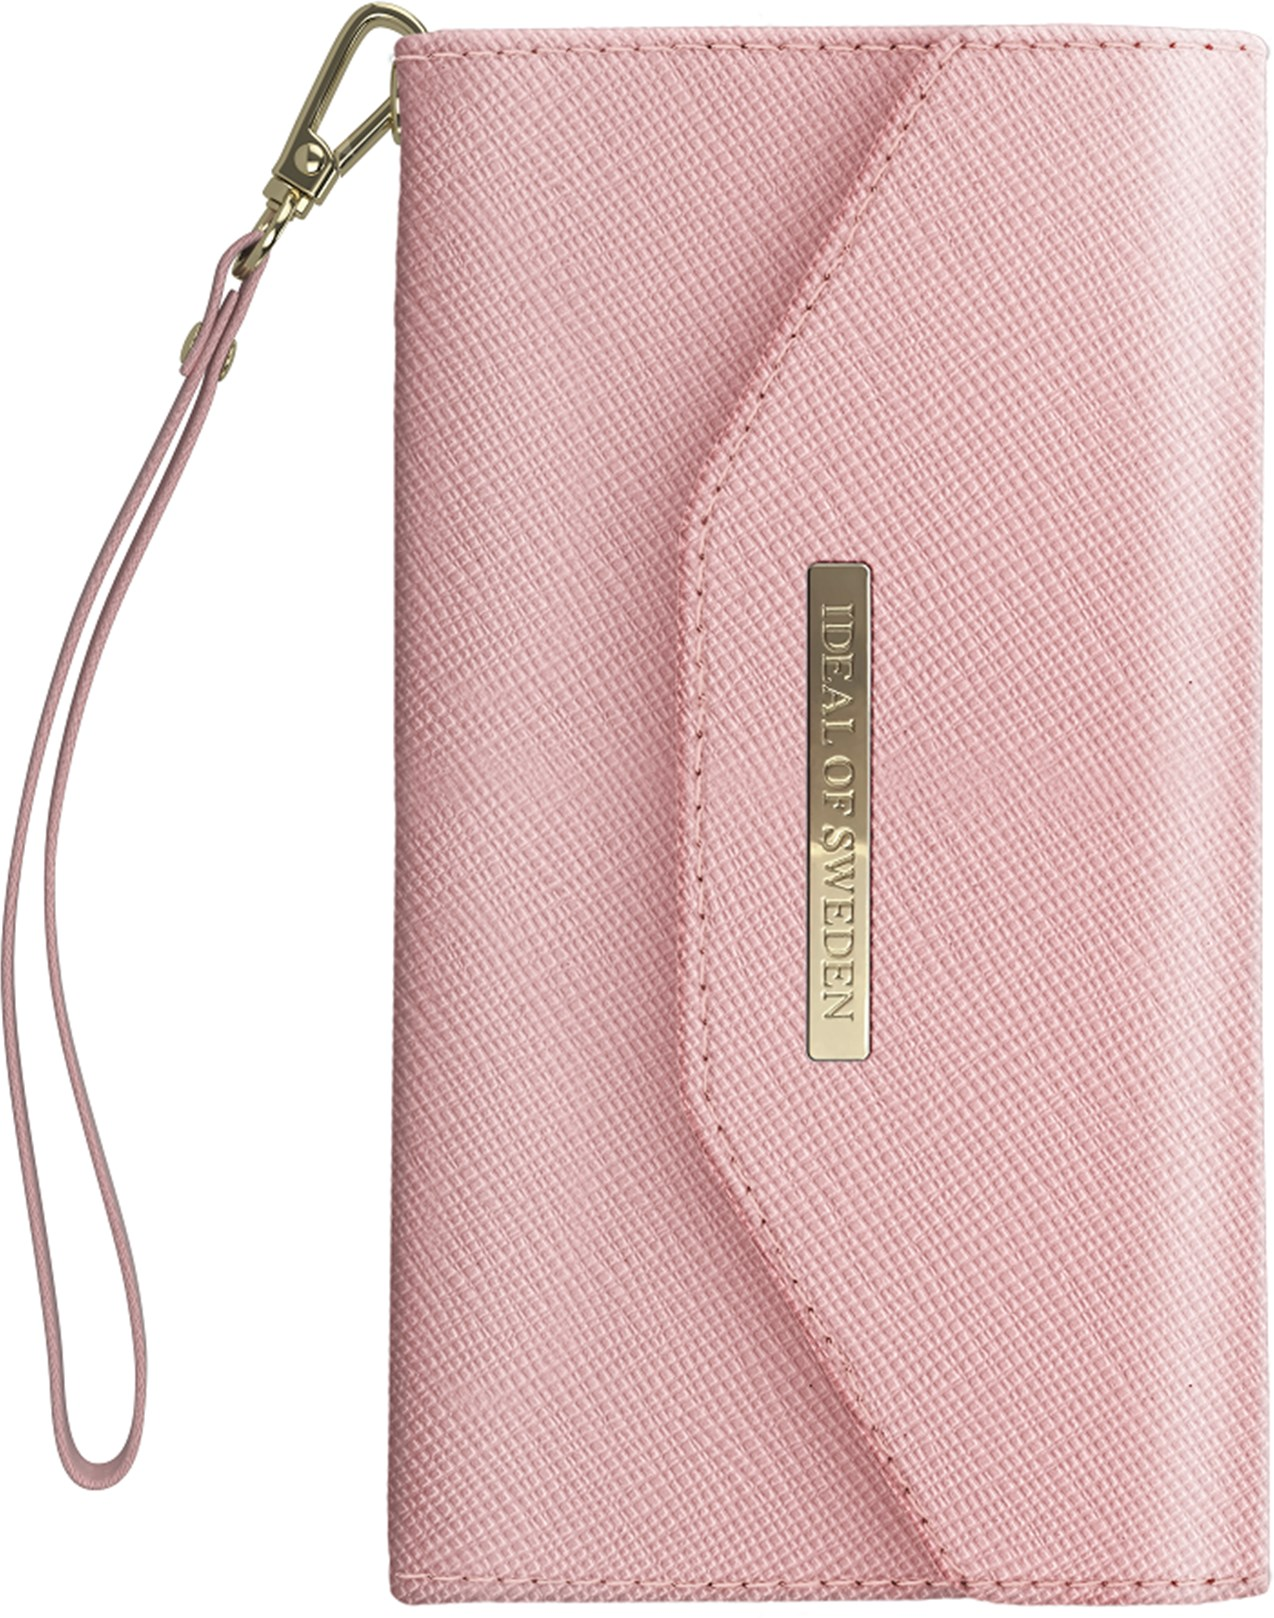 iDeal of Sweden Ideal Mayfair Clutch Samsung Galaxy S10e Pink